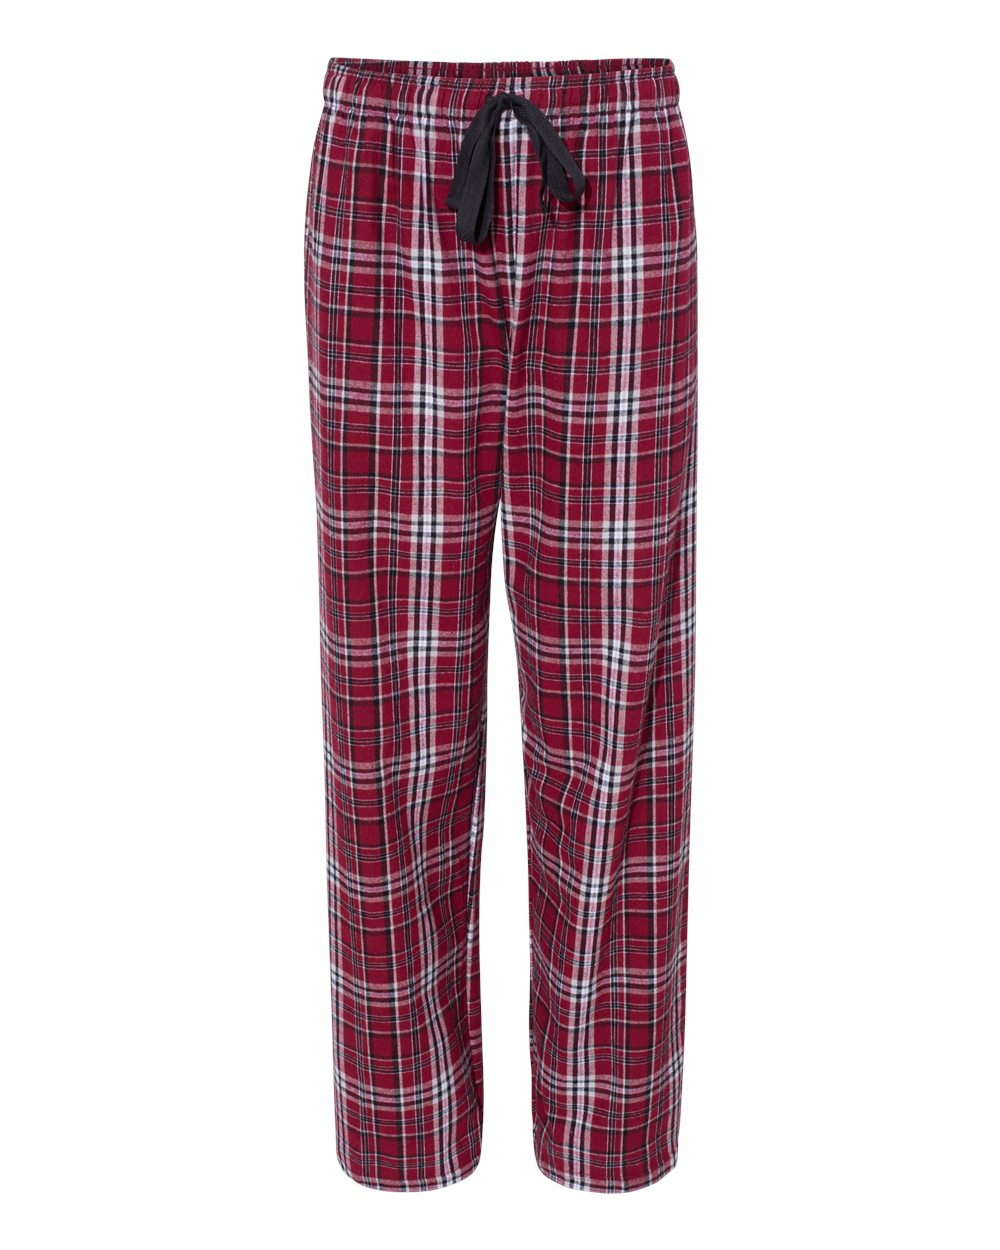 Boxercraft-Unisex-Flannel-Pants-With-Pockets-Pajama-Pants-F20-up-to-2XL thumbnail 15